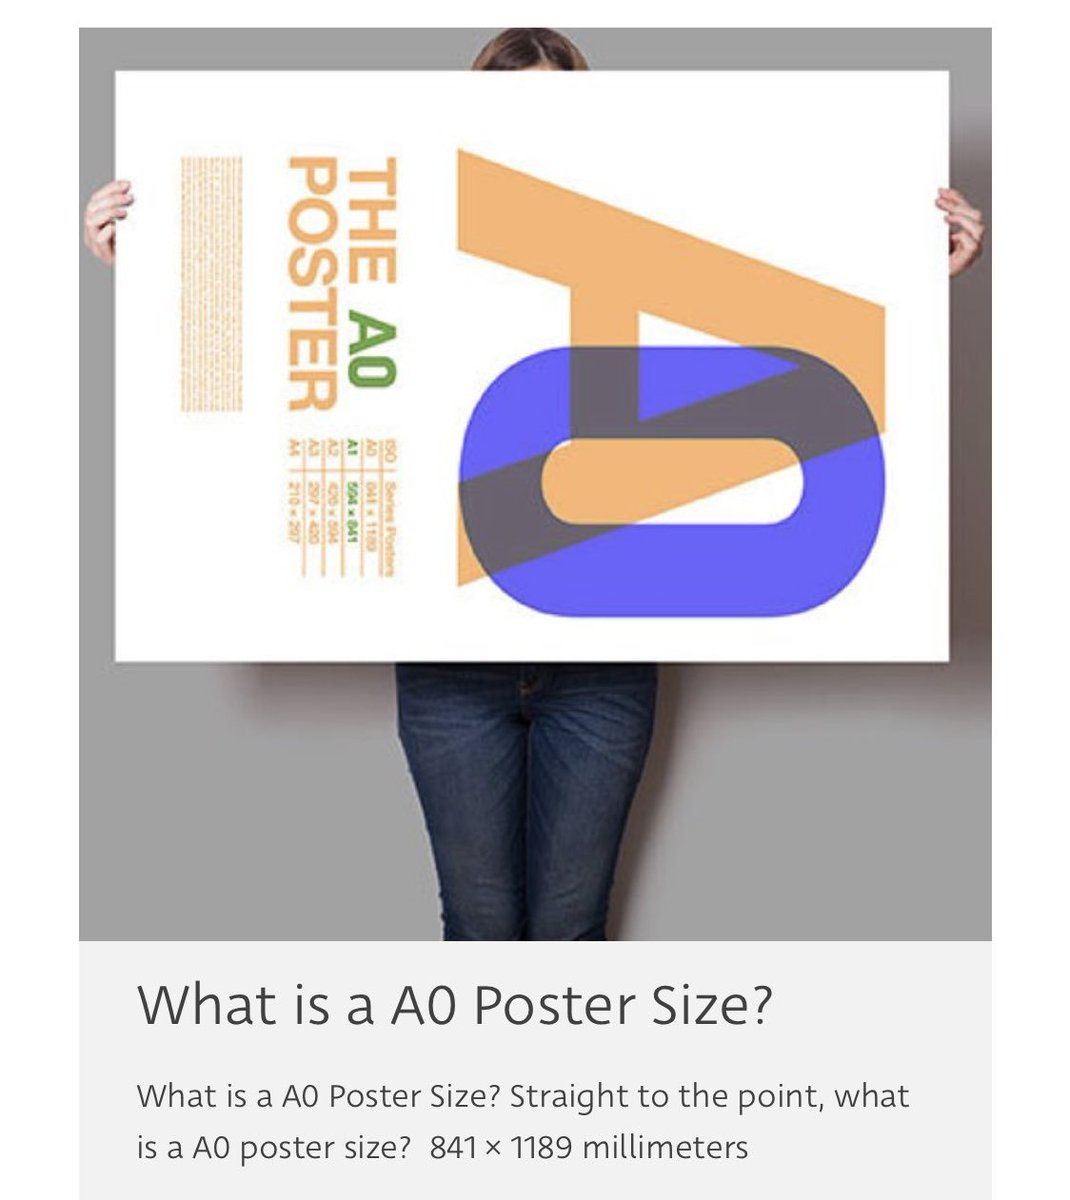 a0posters hashtag on Twitter